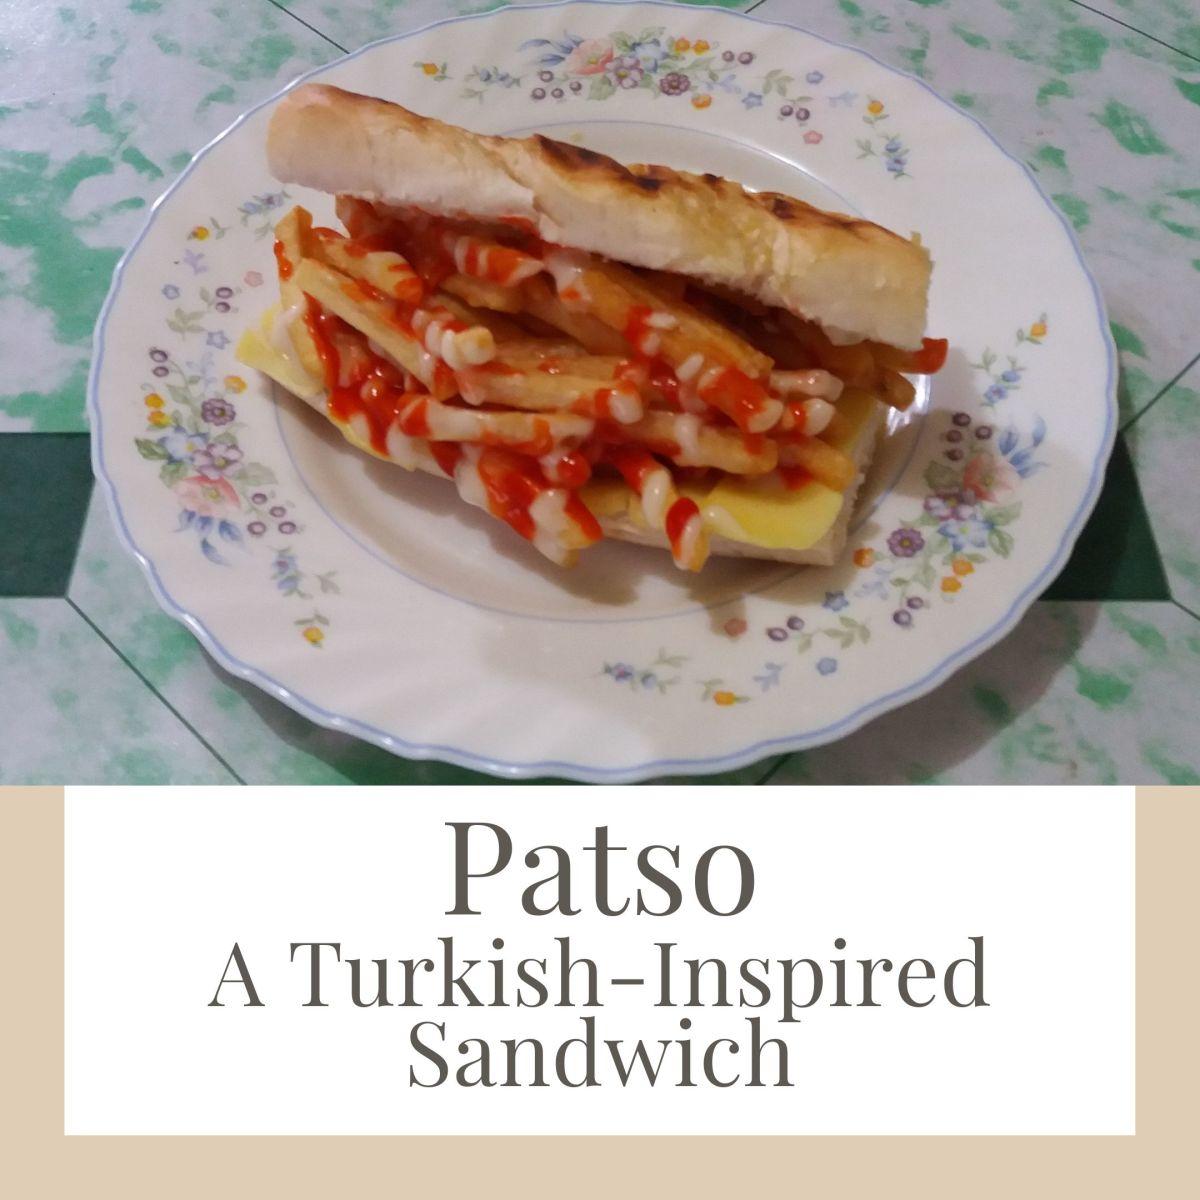 Learn how to make patso, a Turkish-inspired sandwich.